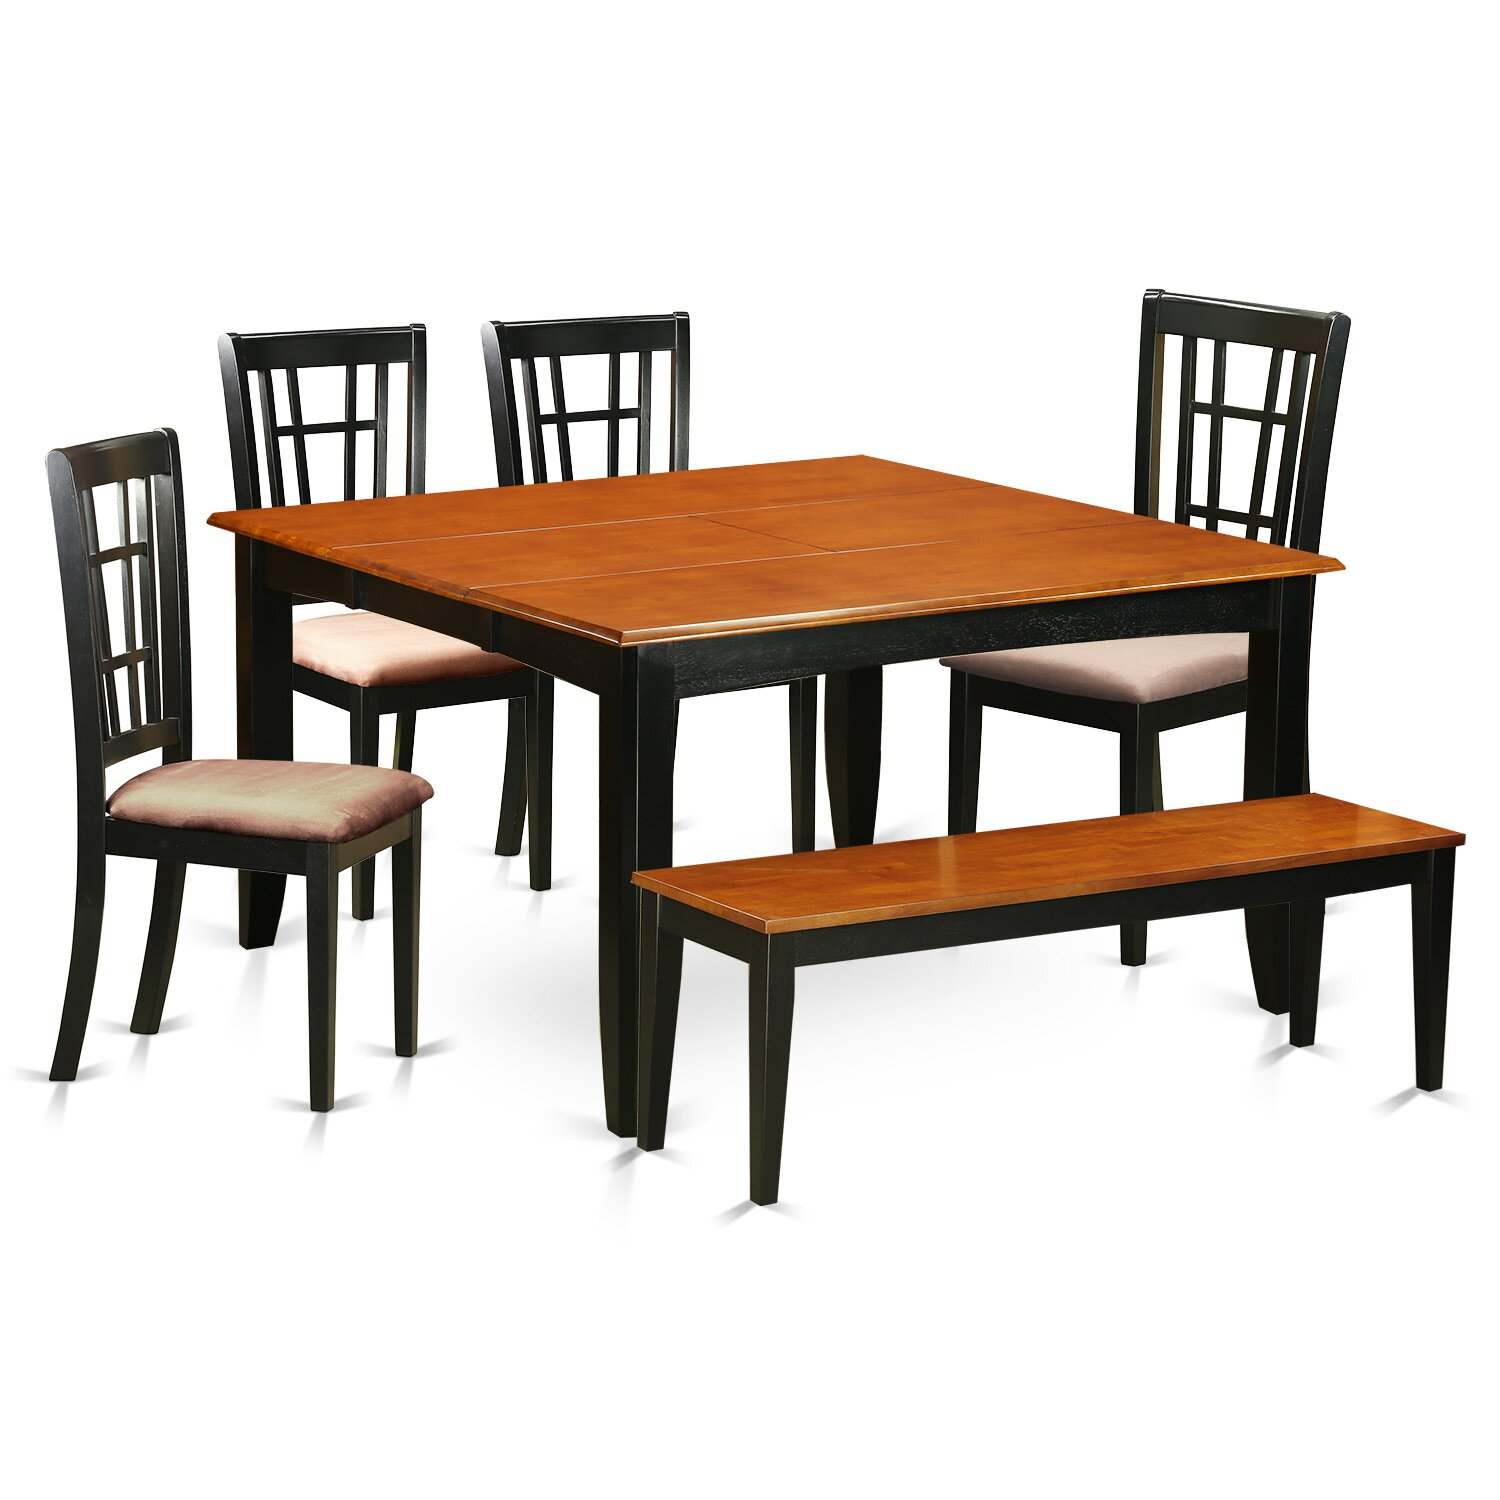 East West Parfait 6 Piece Dining Set Wayfair